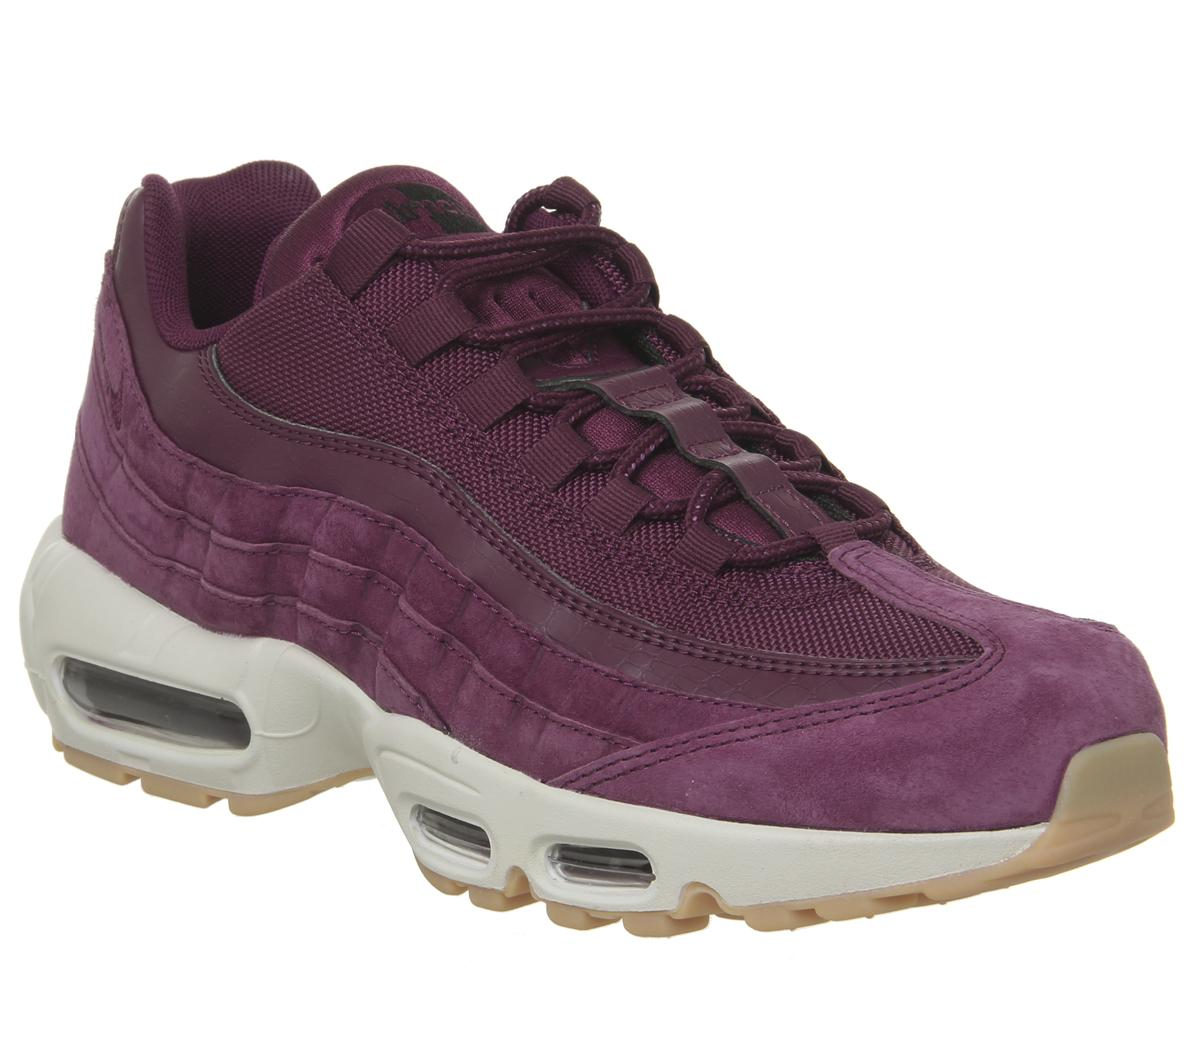 best loved 1db83 55a4a Mens Nike Air Max 95 Bordeaux Desert Sand Uk Size 7